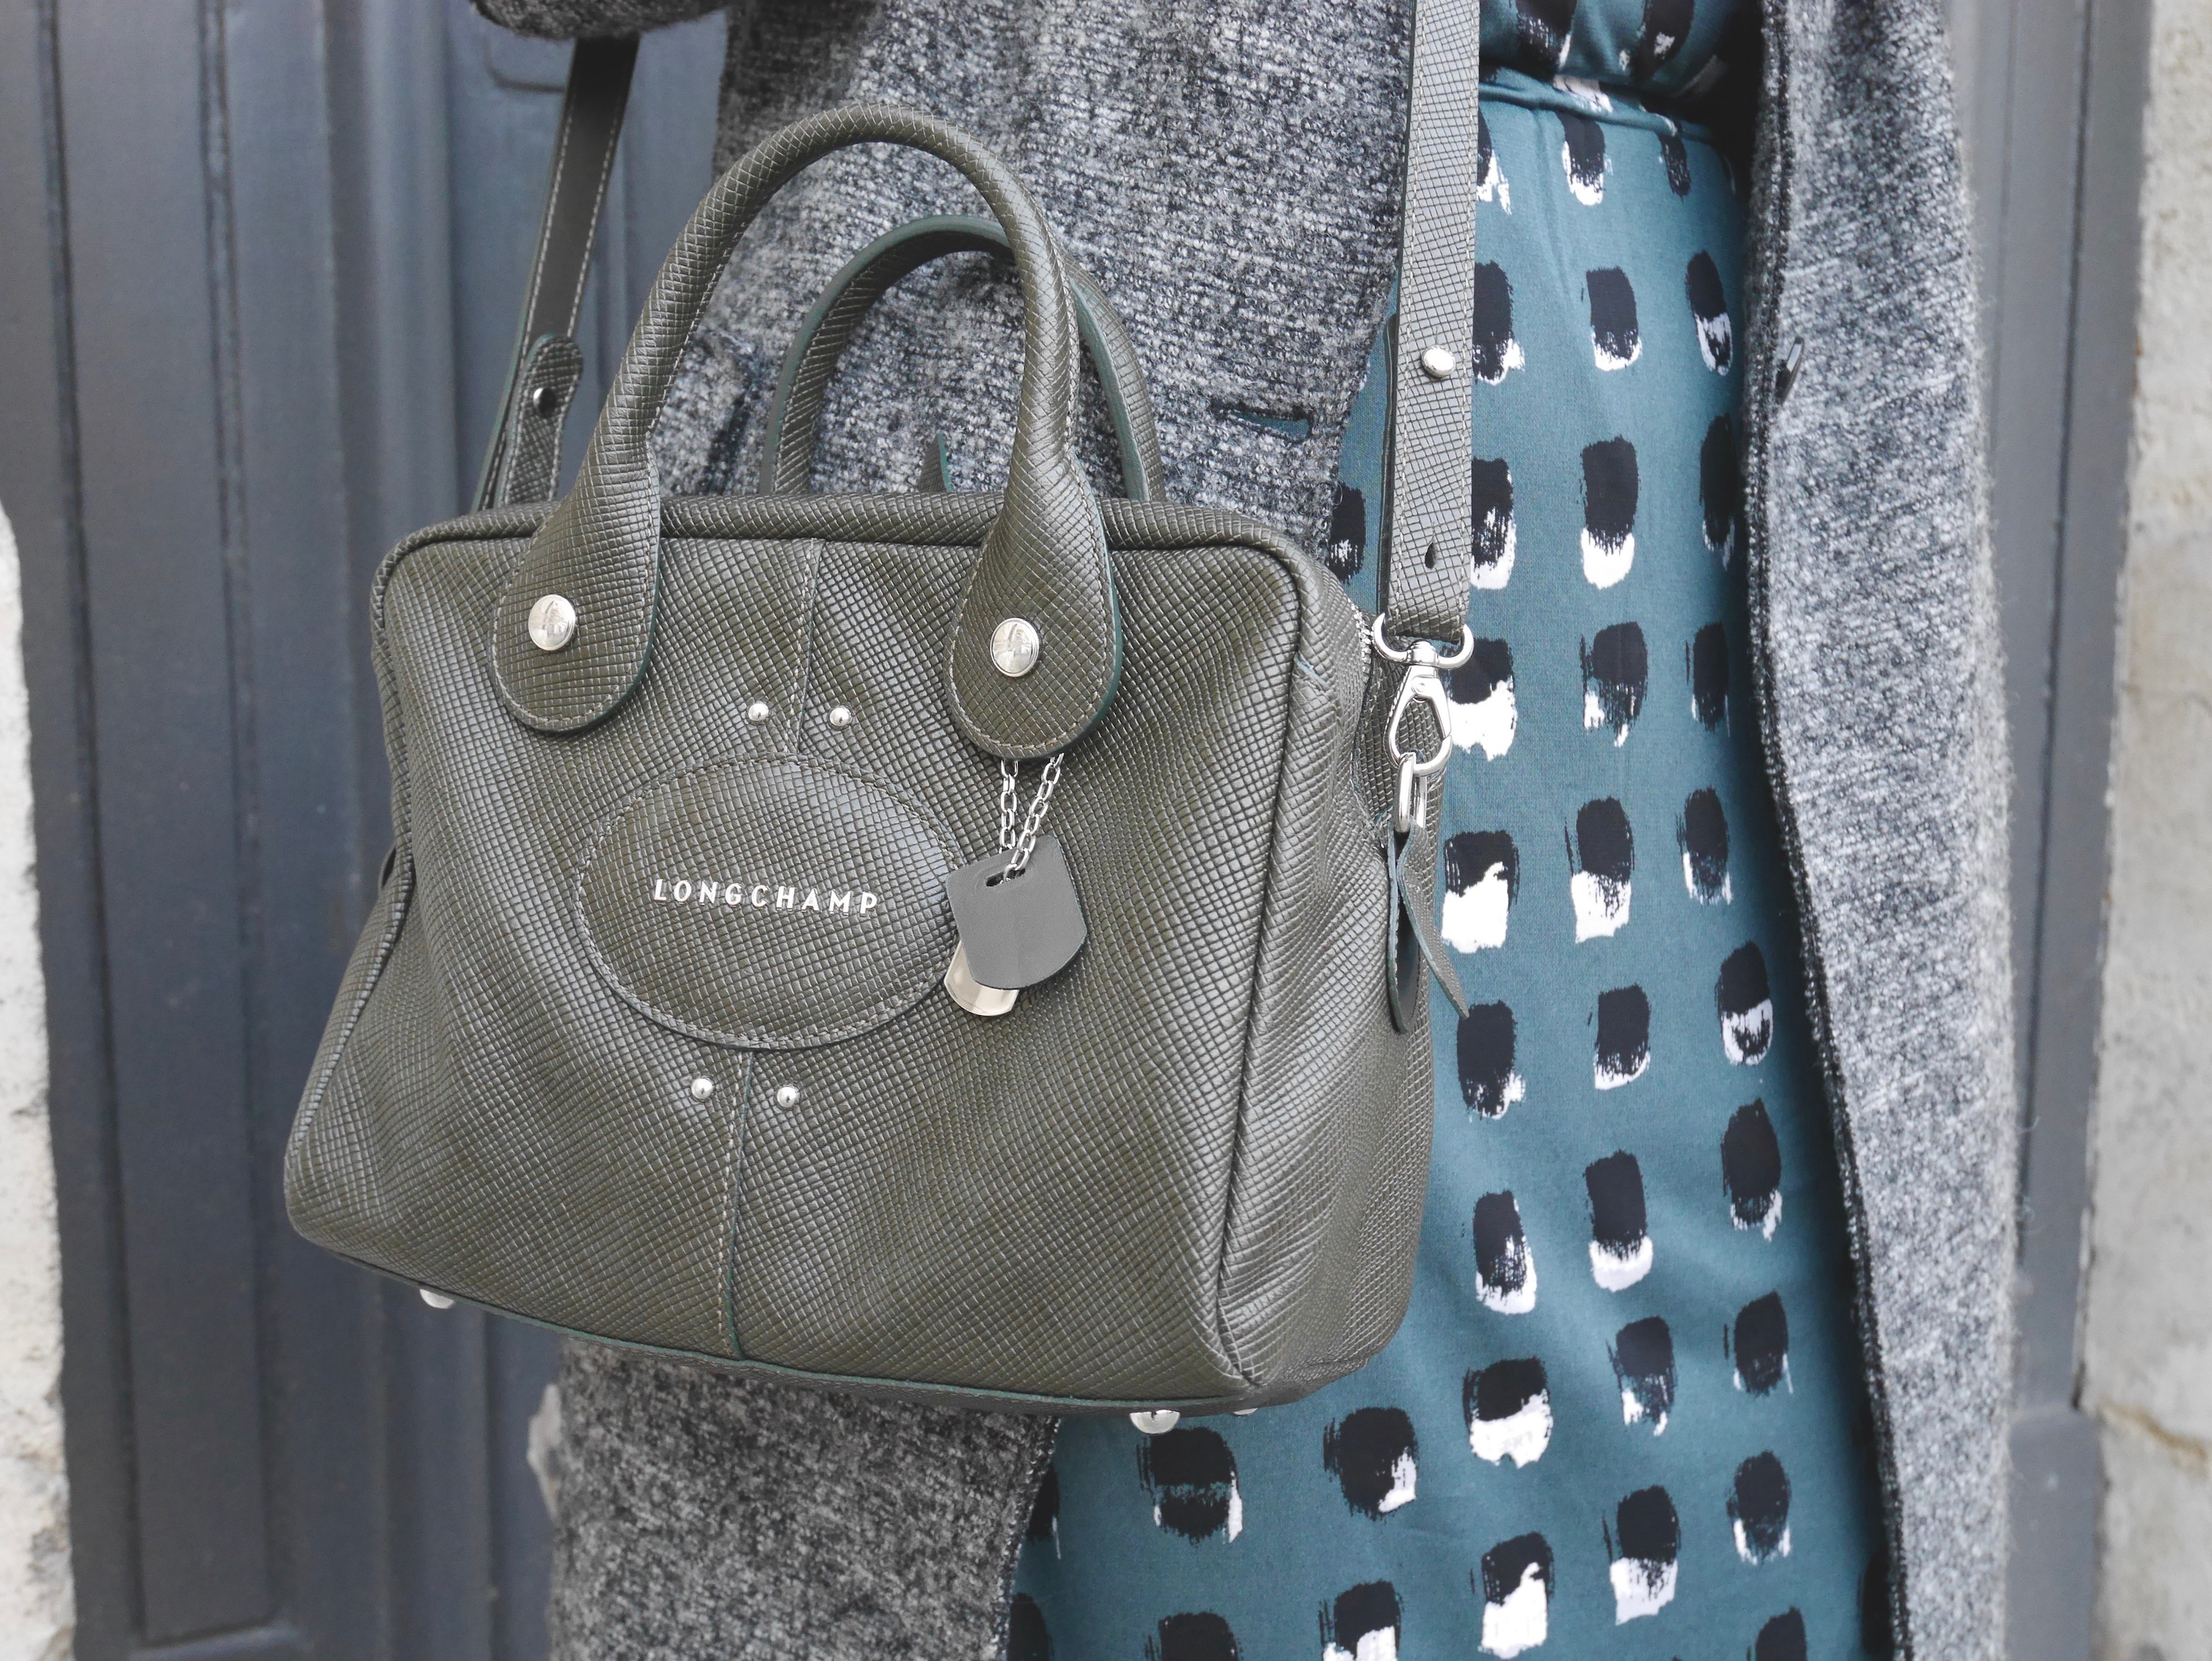 sac longchamp quadri